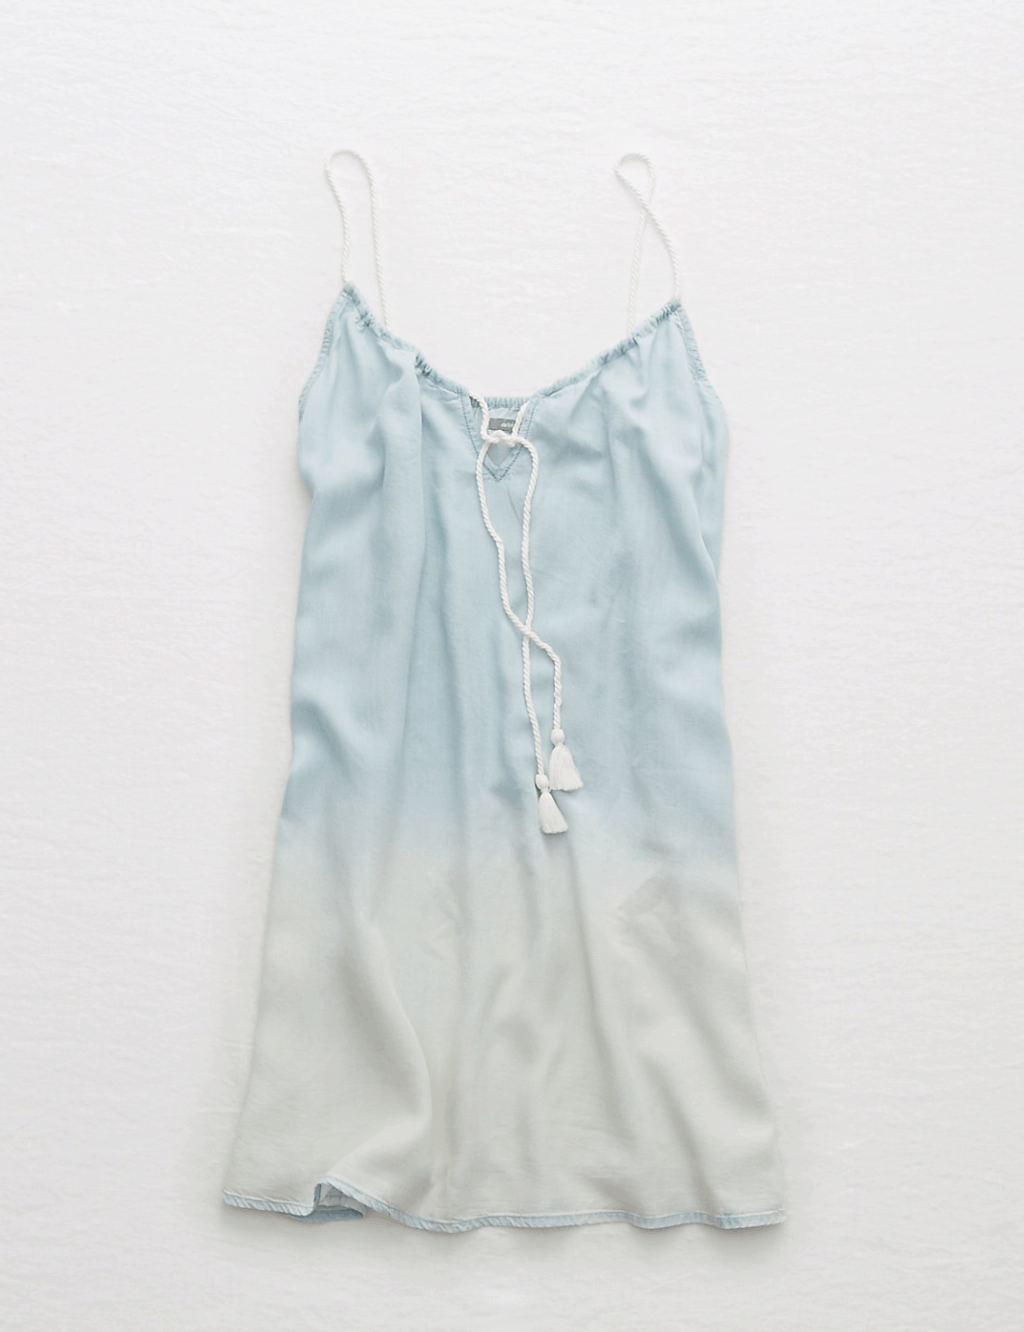 Pale-blue-and-white ombré chambray dress with white twisted front tie with tassels and white twisted straps and keyhole neckline